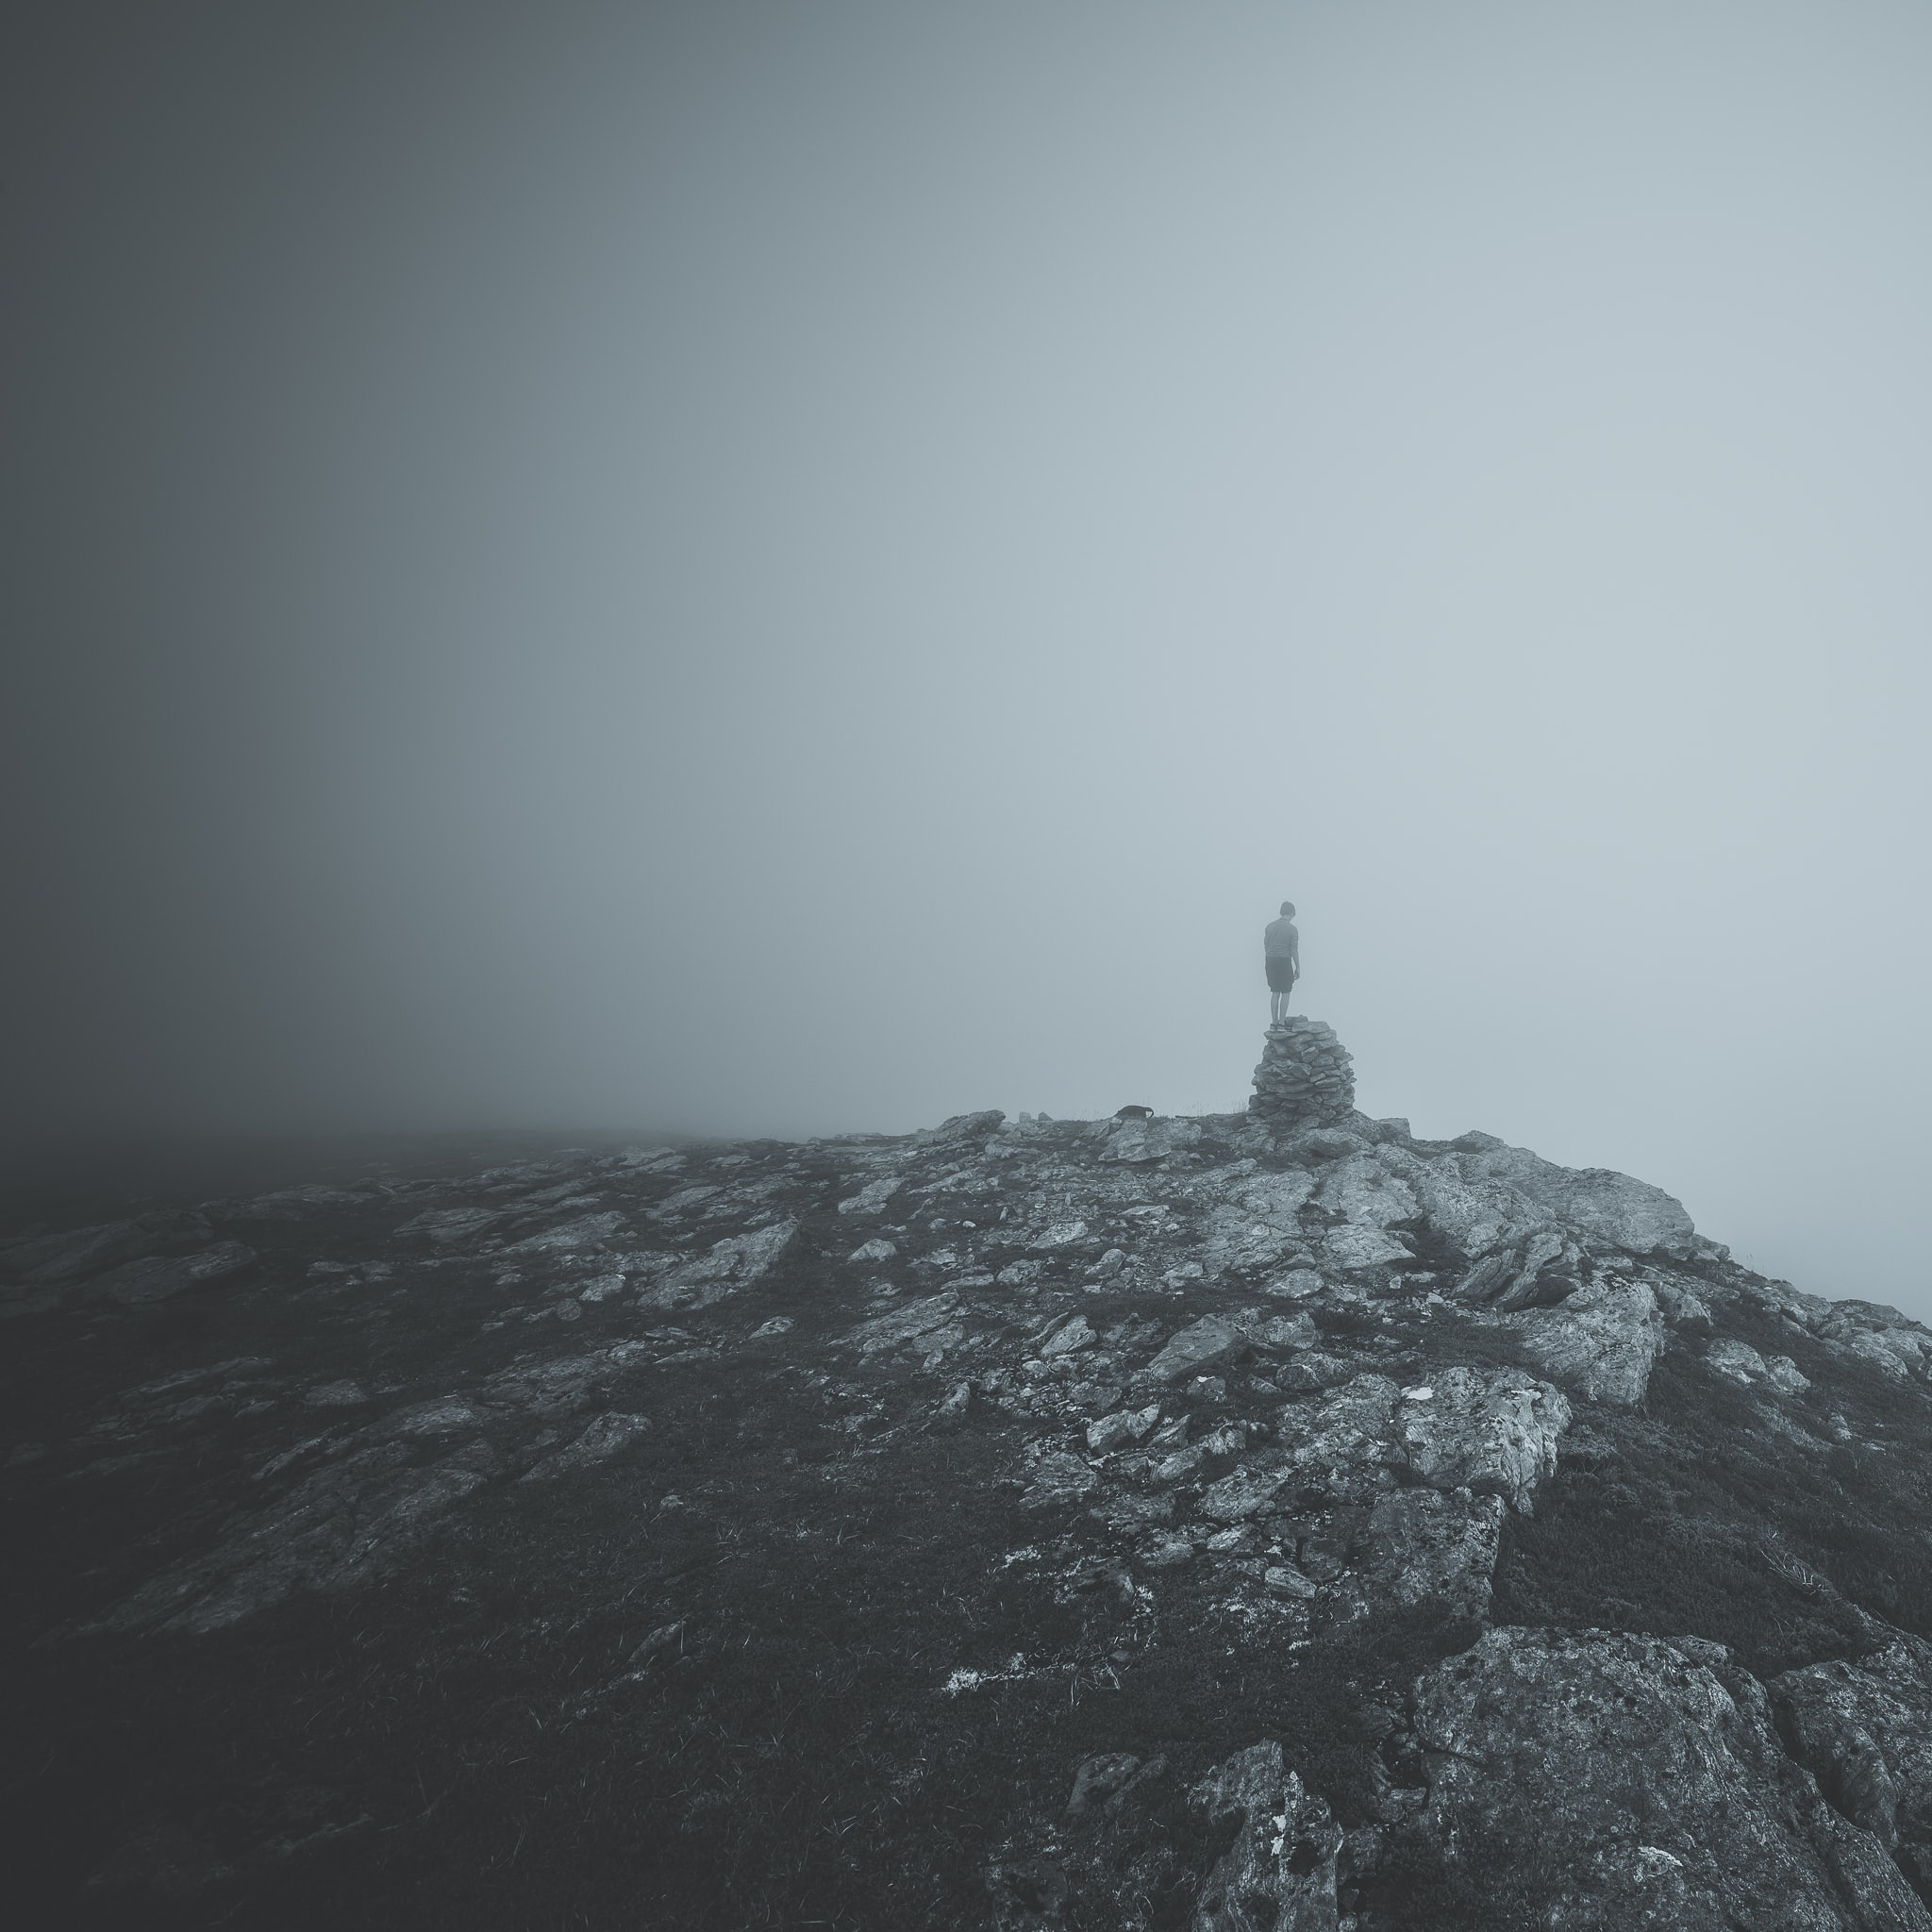 Person stands on a rock formation on a misty rocky mountain